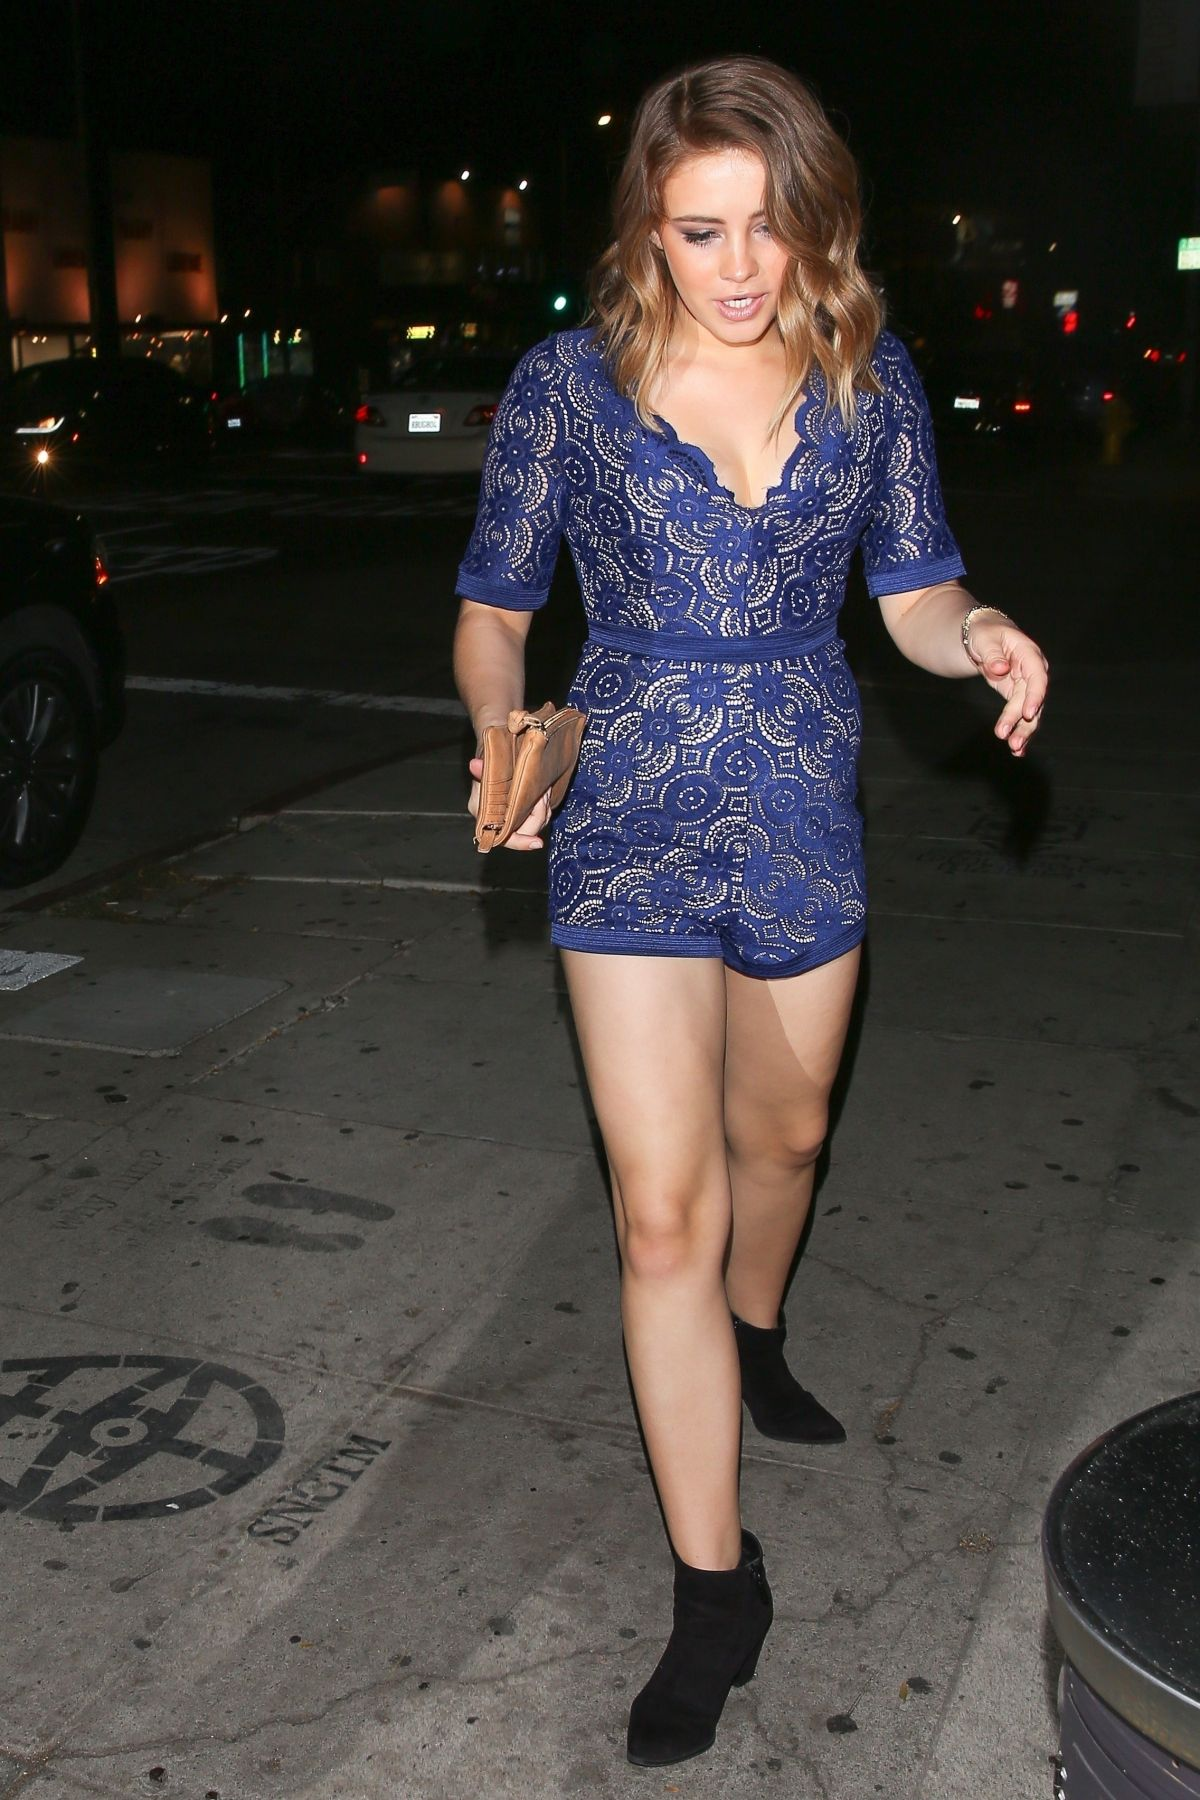 Josephine Langford At The Nice Guy in West Hollywood - Celebzz Josephine Langford